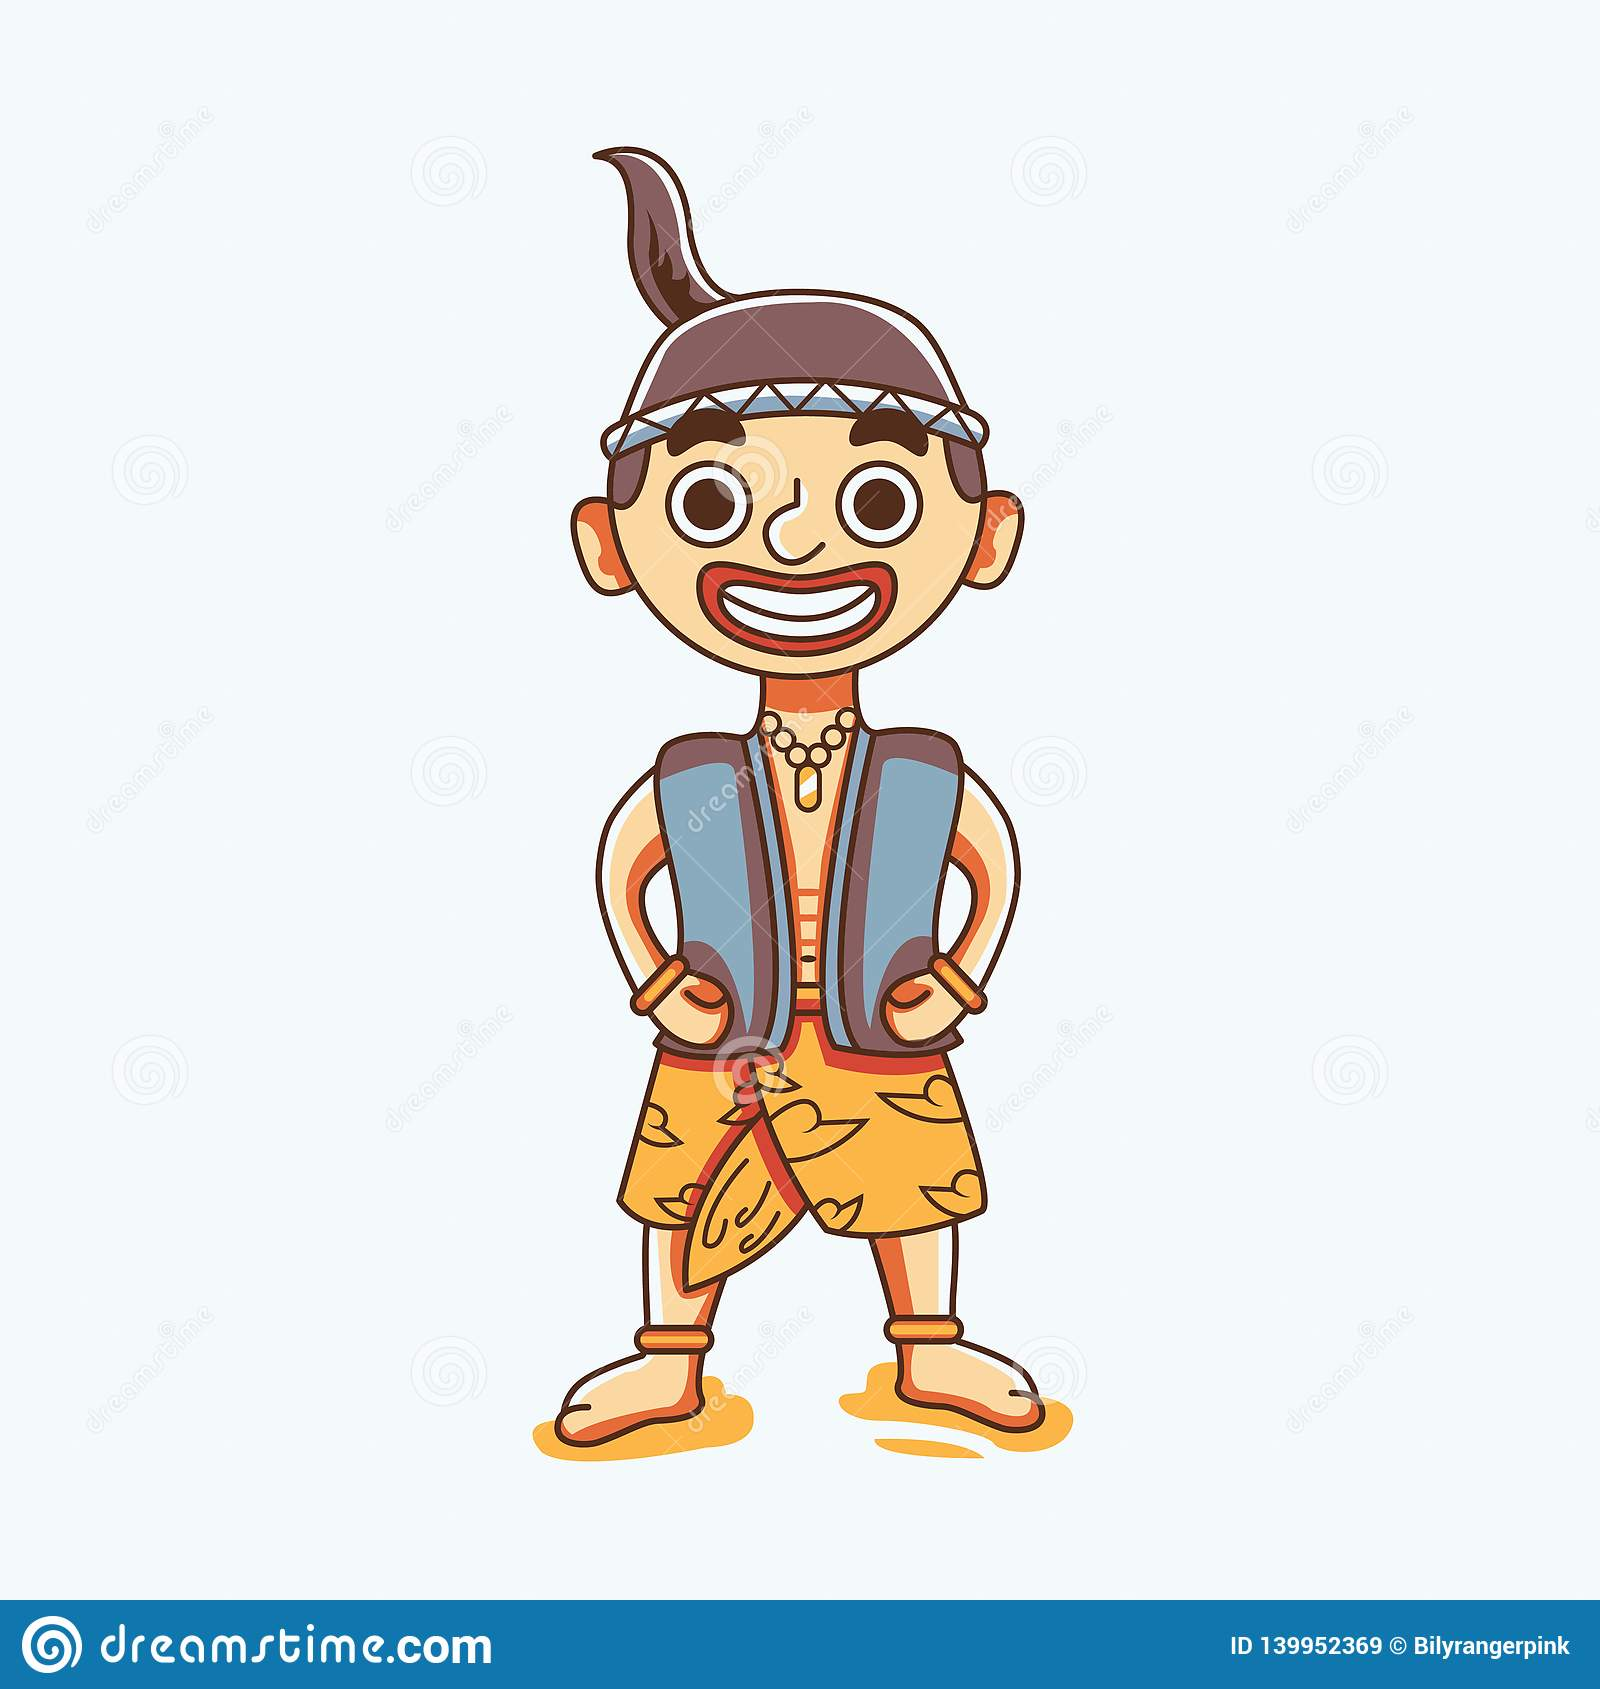 Character design simple design